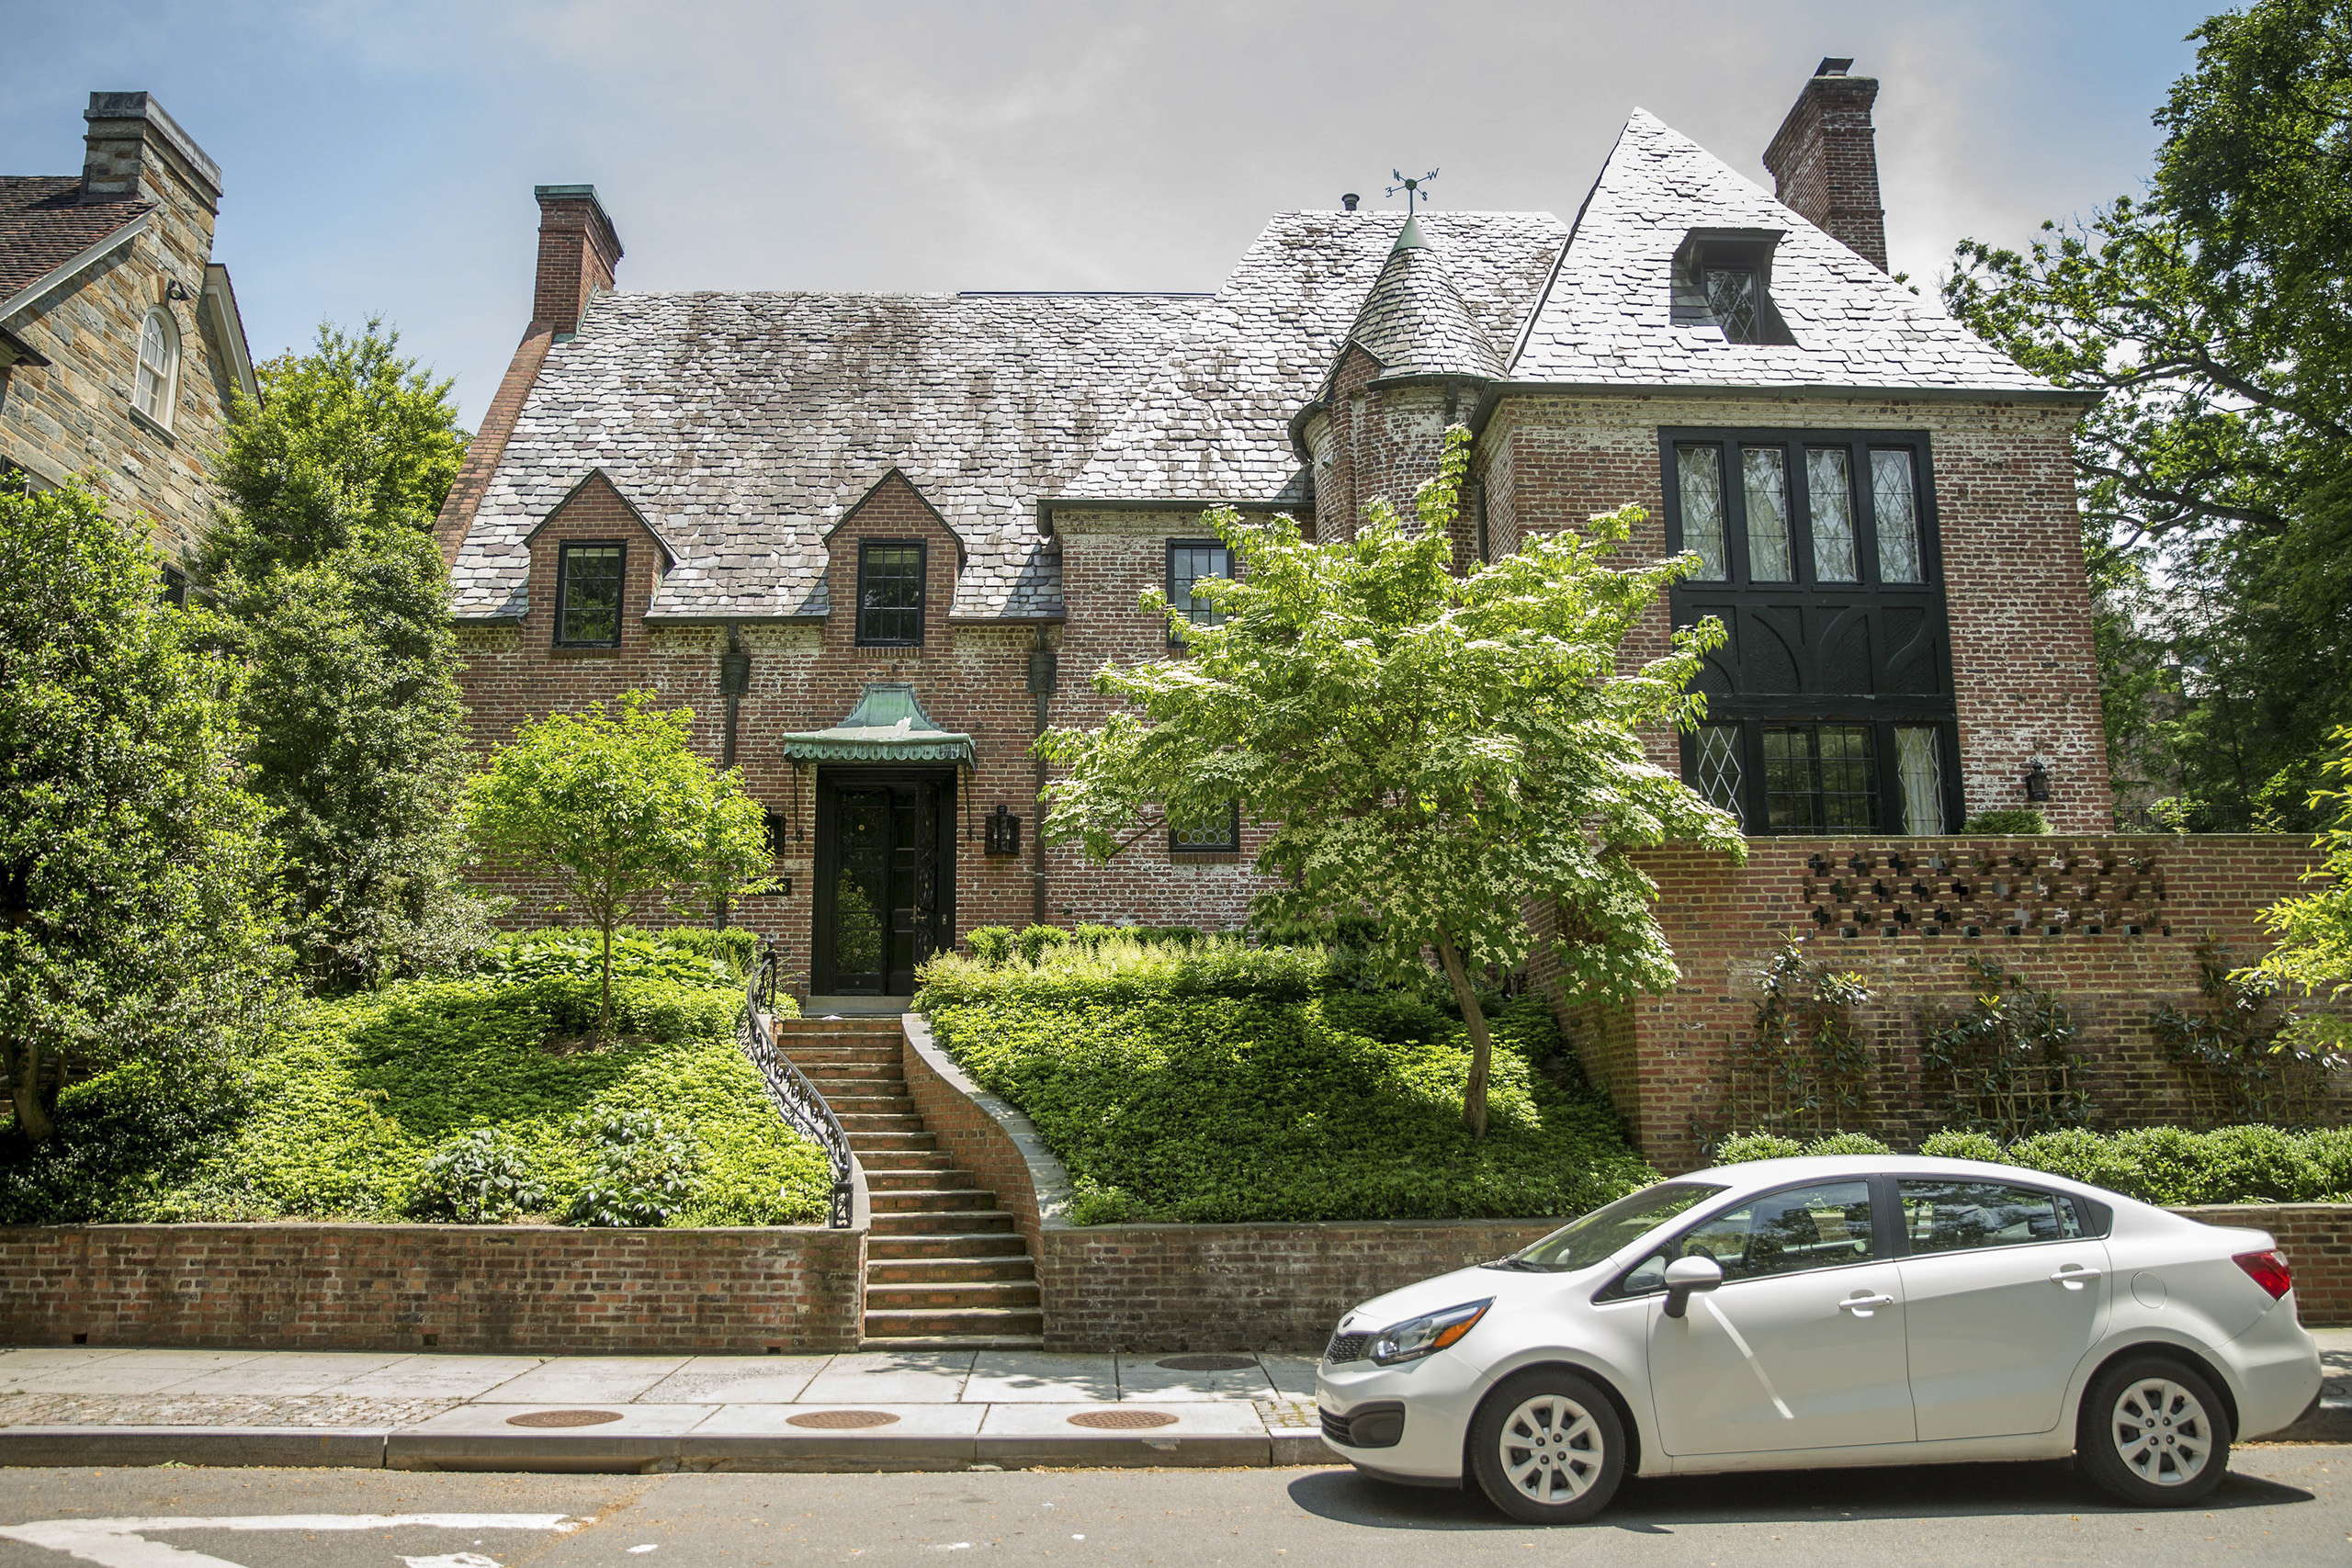 Real estate circles buzzed Wednesday over reports that President Obama and first lady Michelle Obama have decided to lease this nine-bedroom mansion in Washington's Kalorama neighborhood when he leaves office in January 2017. The home sits on a quarter-acre lot just down the road from the Naval Observatory, the vice president's official residence.